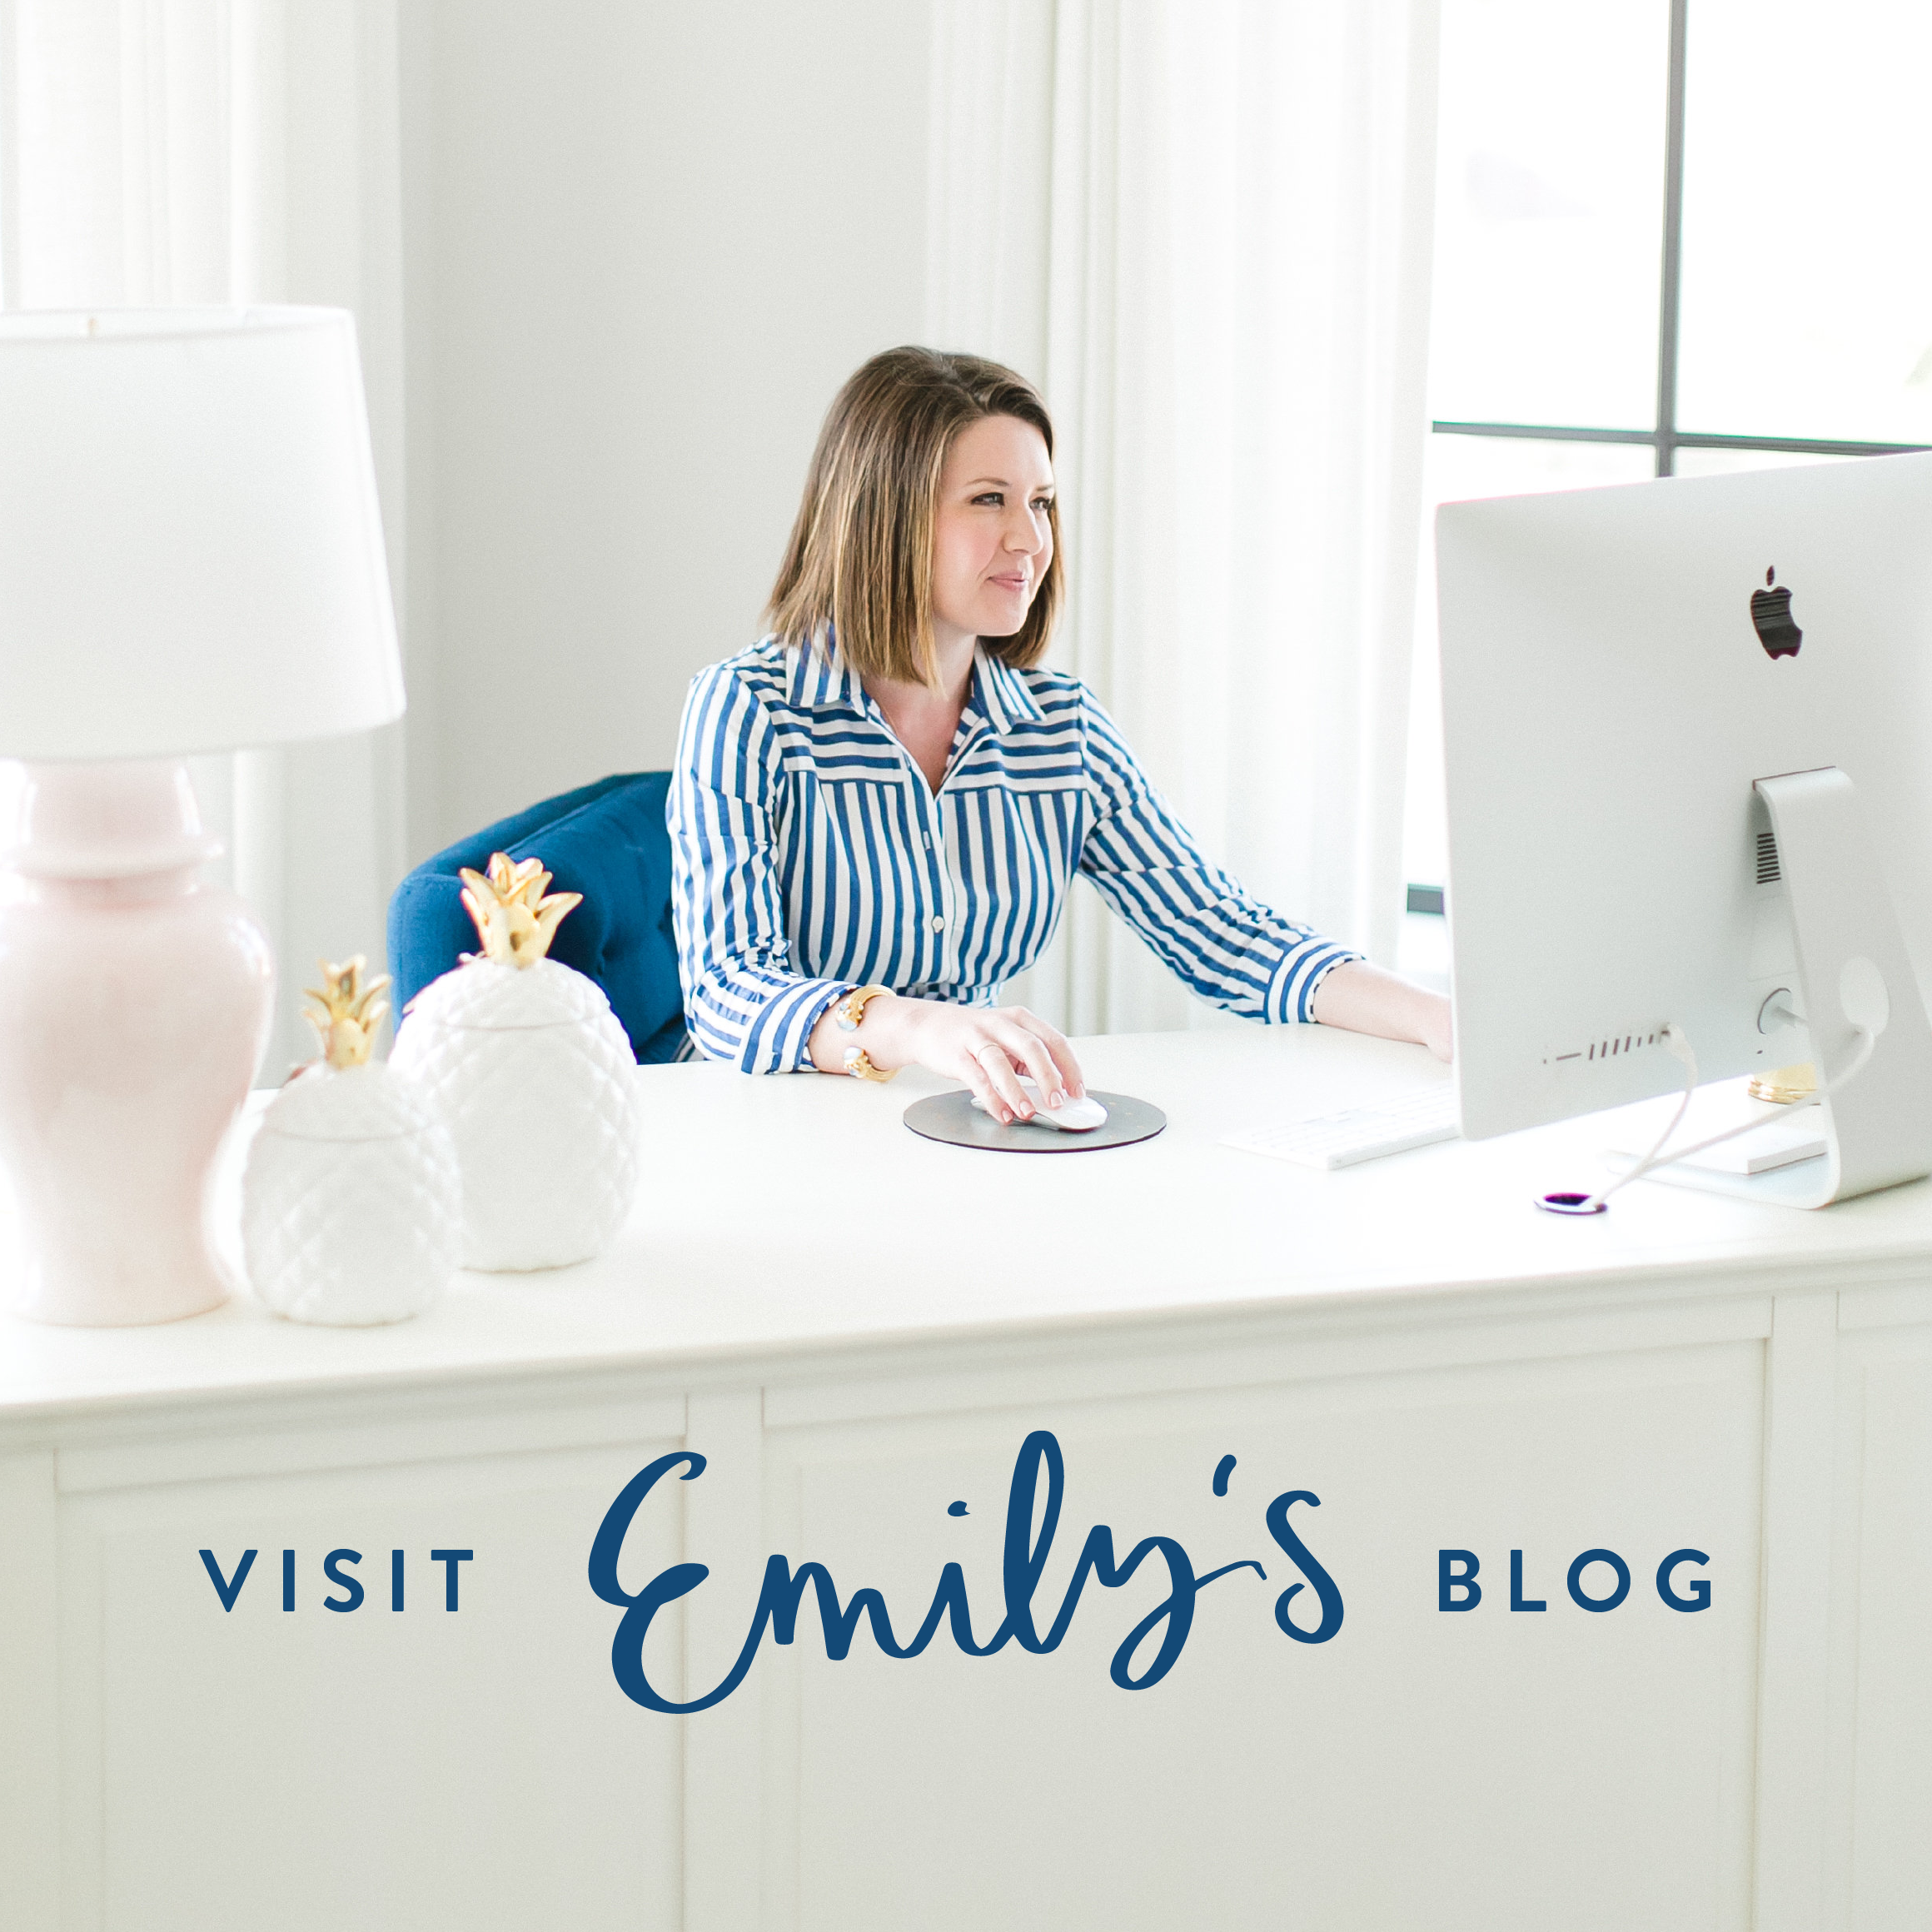 picture relating to Emilyley titled Simplified® via Emily Ley